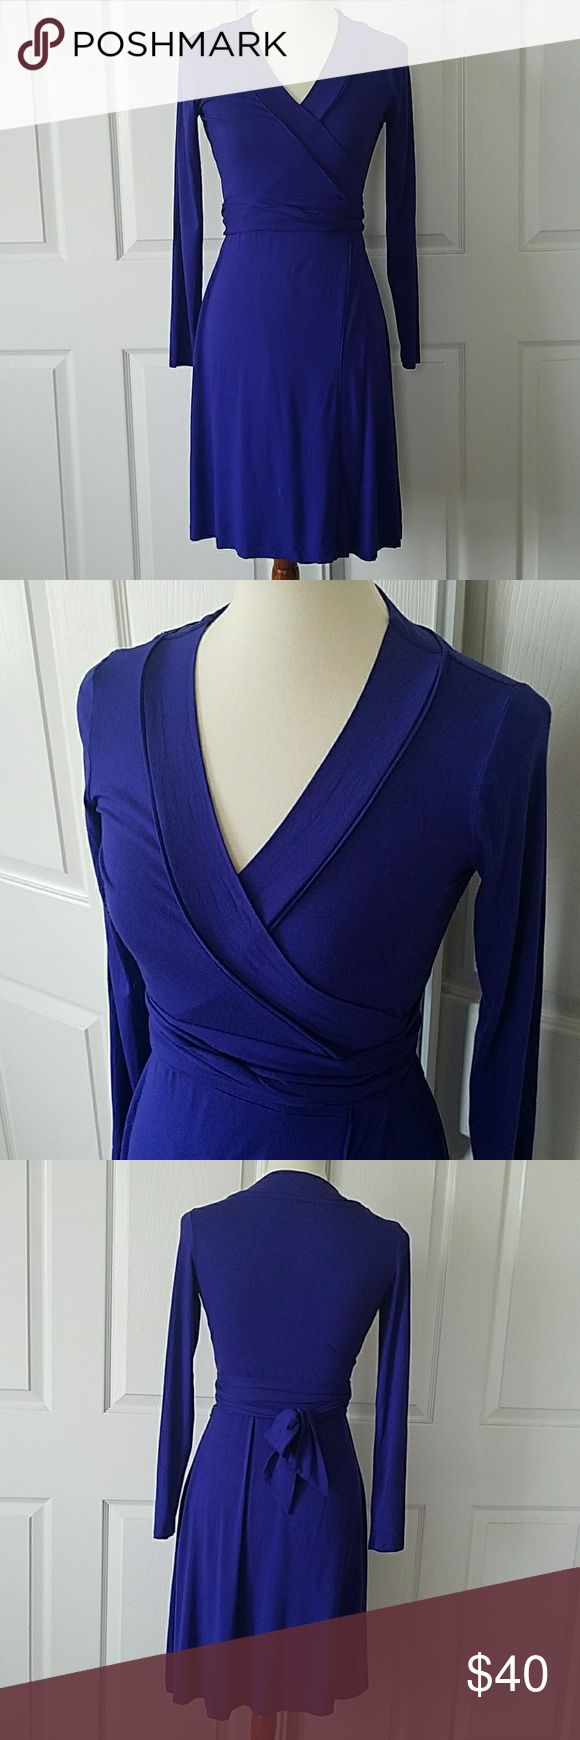 Banana Republic Cobalt Blue Wrap Dress XSP Brand: Banana Republic Size: XSP (XS petite) [Can fit up to size S due to full adjustability] Color: beautiful cobalt blue  This amazing dress can take you from work to cocktails! Fully adjustable tie/sash makes the dress fit to your body perfectly. Tie in the front for a sassy touch or on the back for a classic look. Looks amazing with nude heels and a classic red lip 💄💋 Banana Republic Dresses